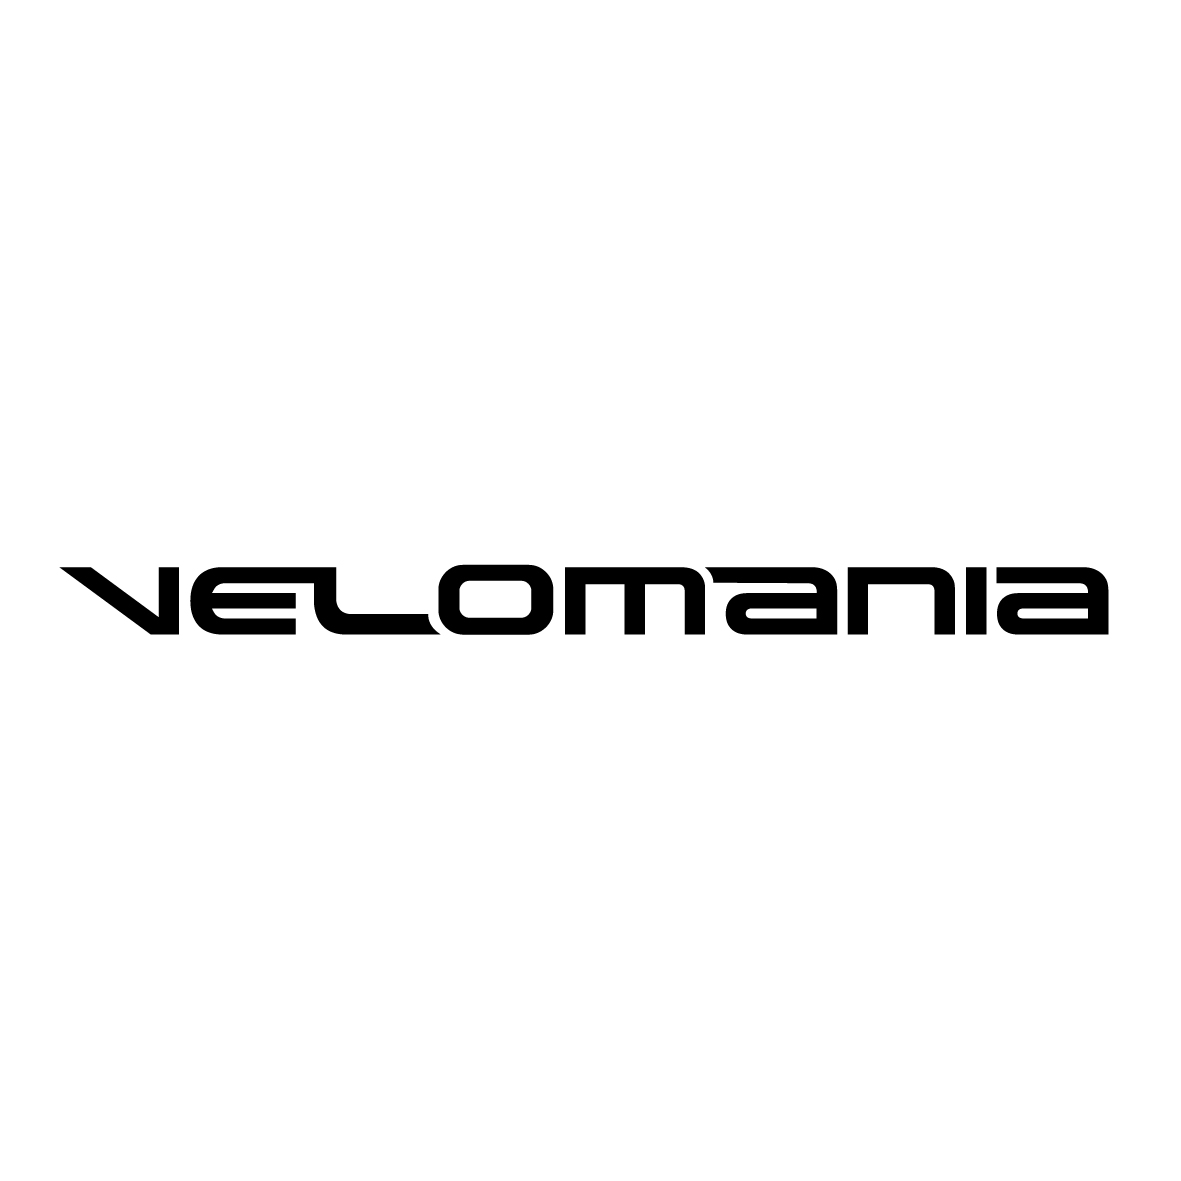 Velomania square-01